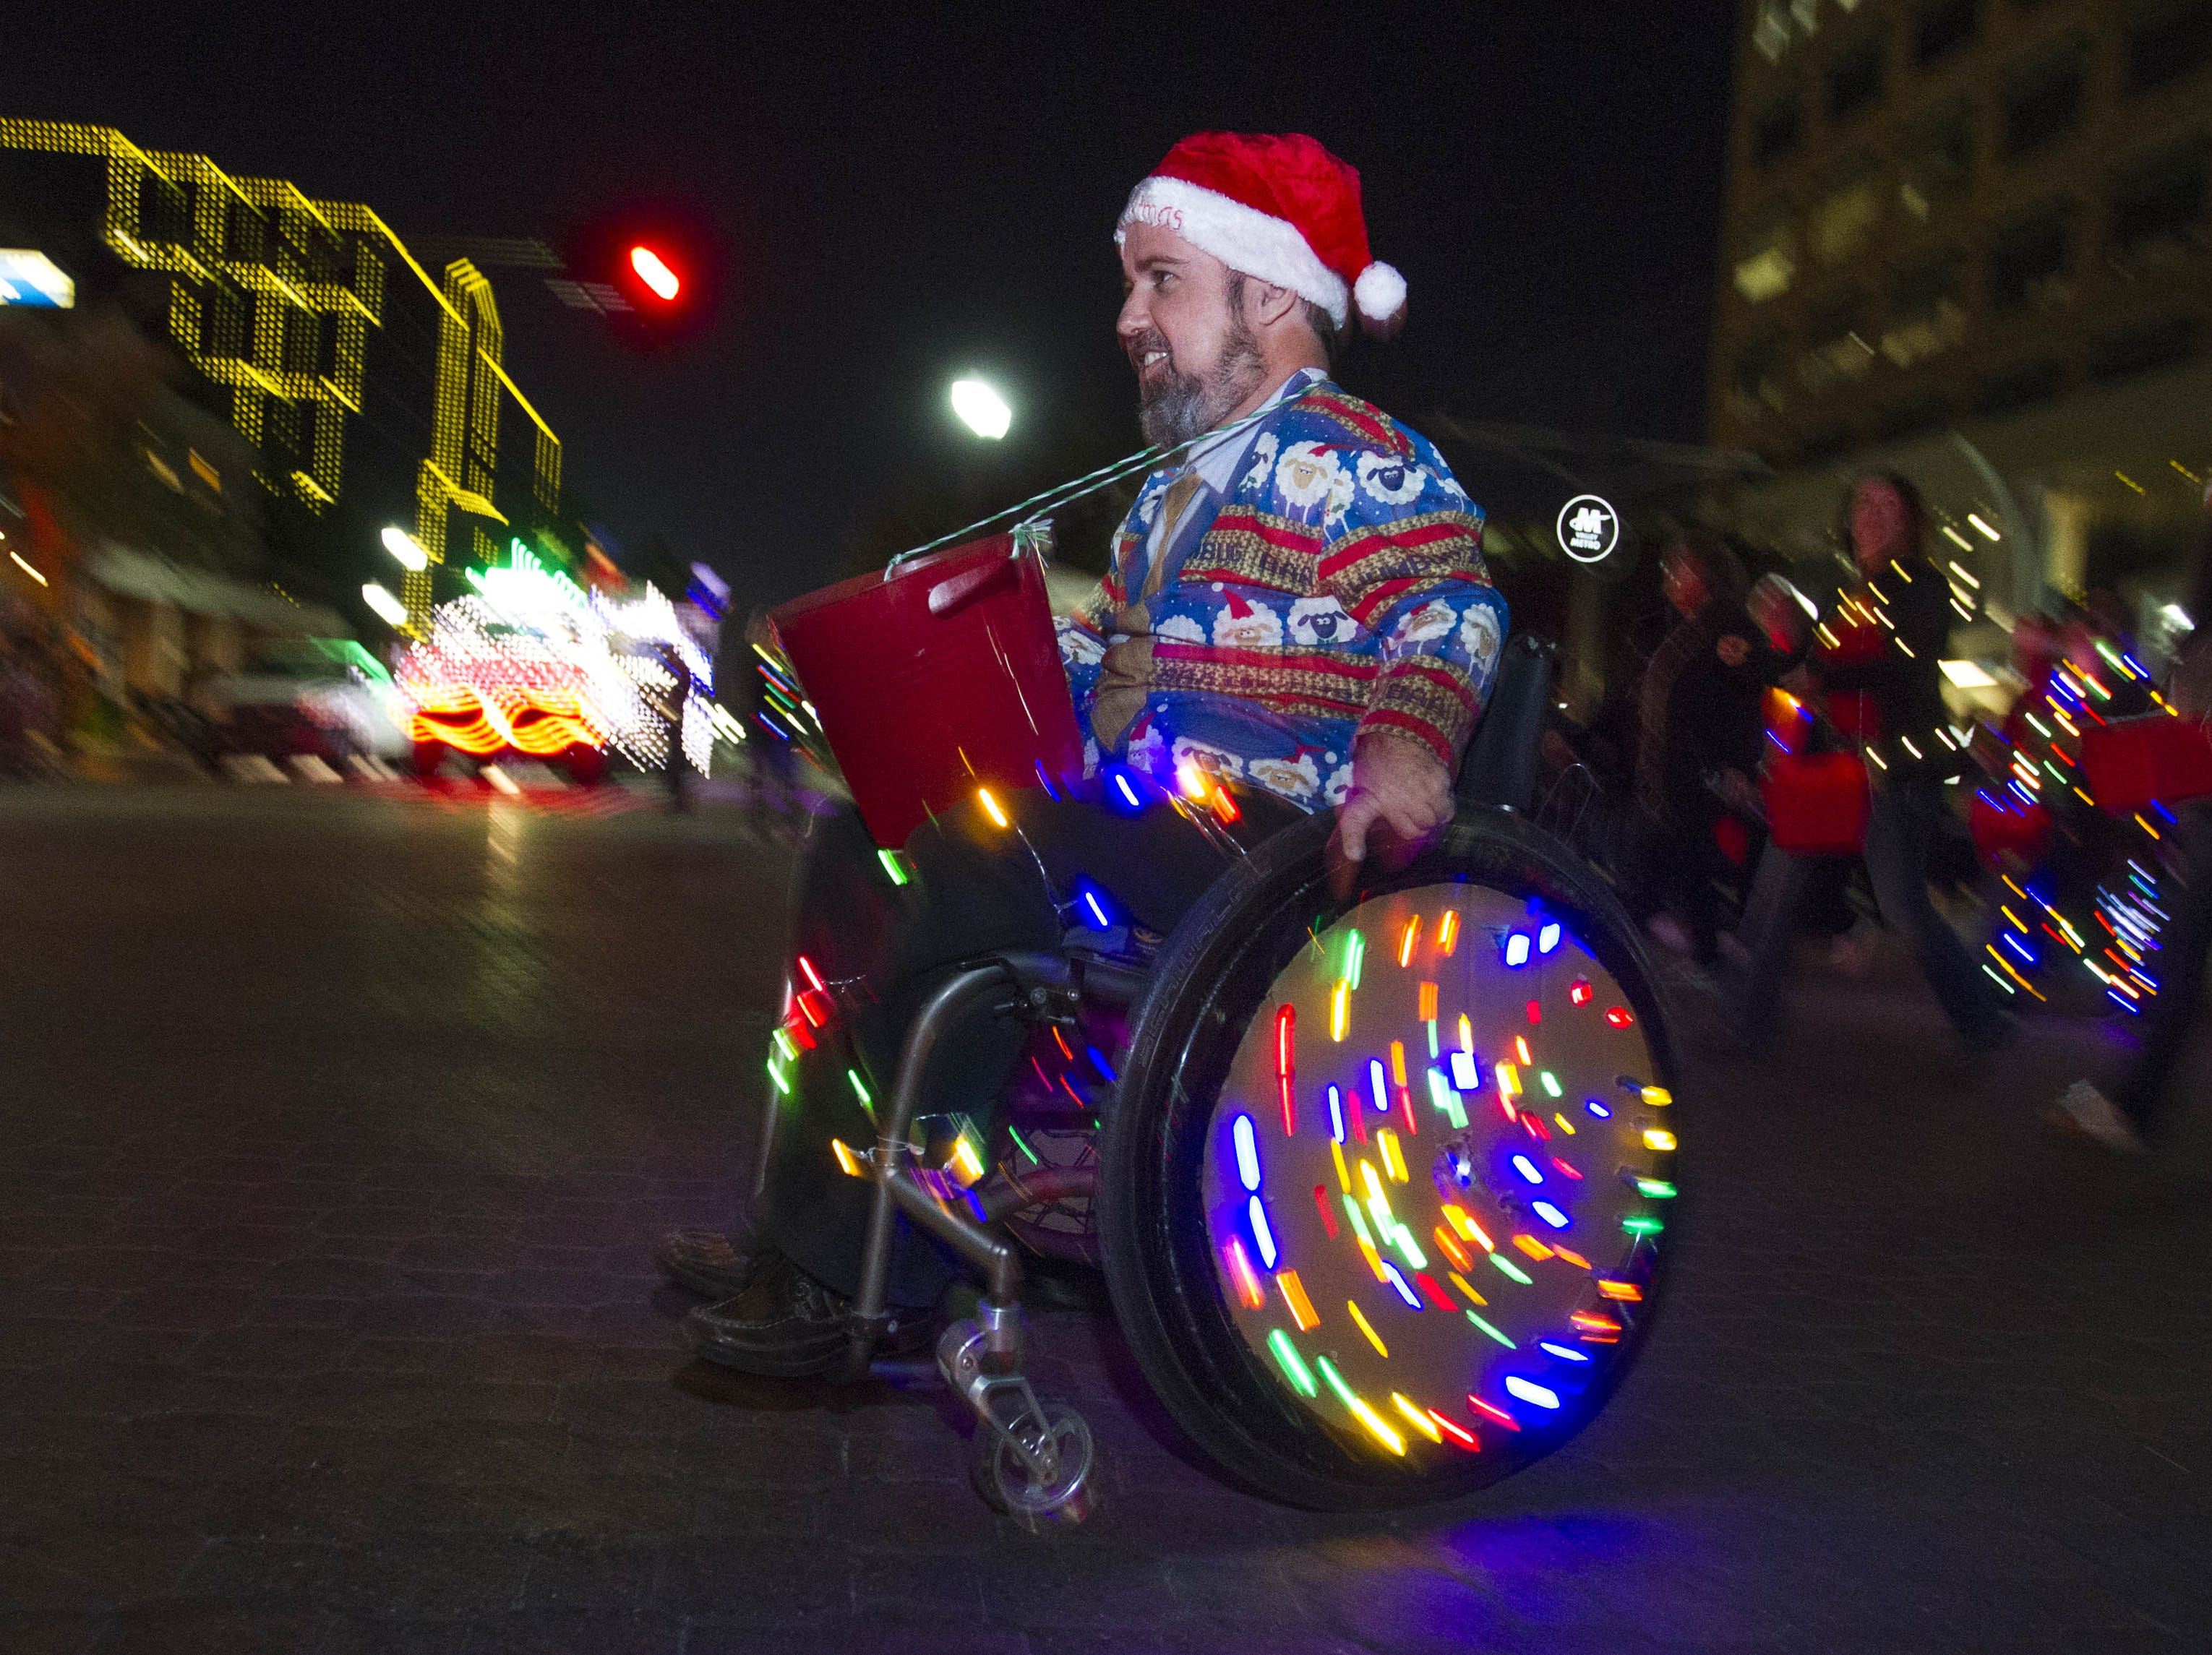 A Light Parade participate throws out out candy to the crowd during the 2018 Fantasy of Lights Parade on Mill Ave. Friday, Nov. 23, 2018.